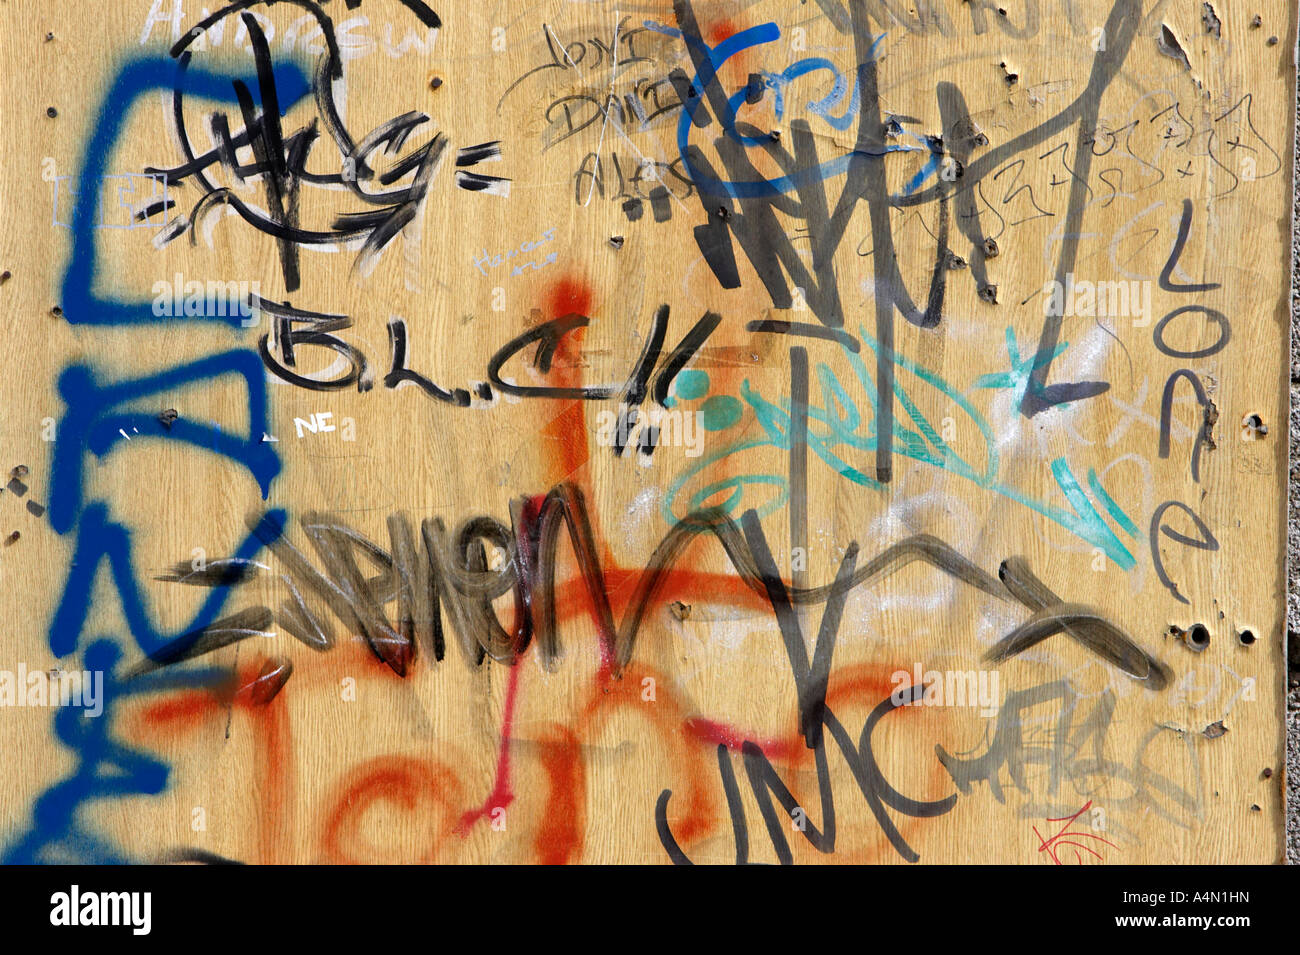 Various grafitti writing on wooden panel tenerife canary islands spain stock image